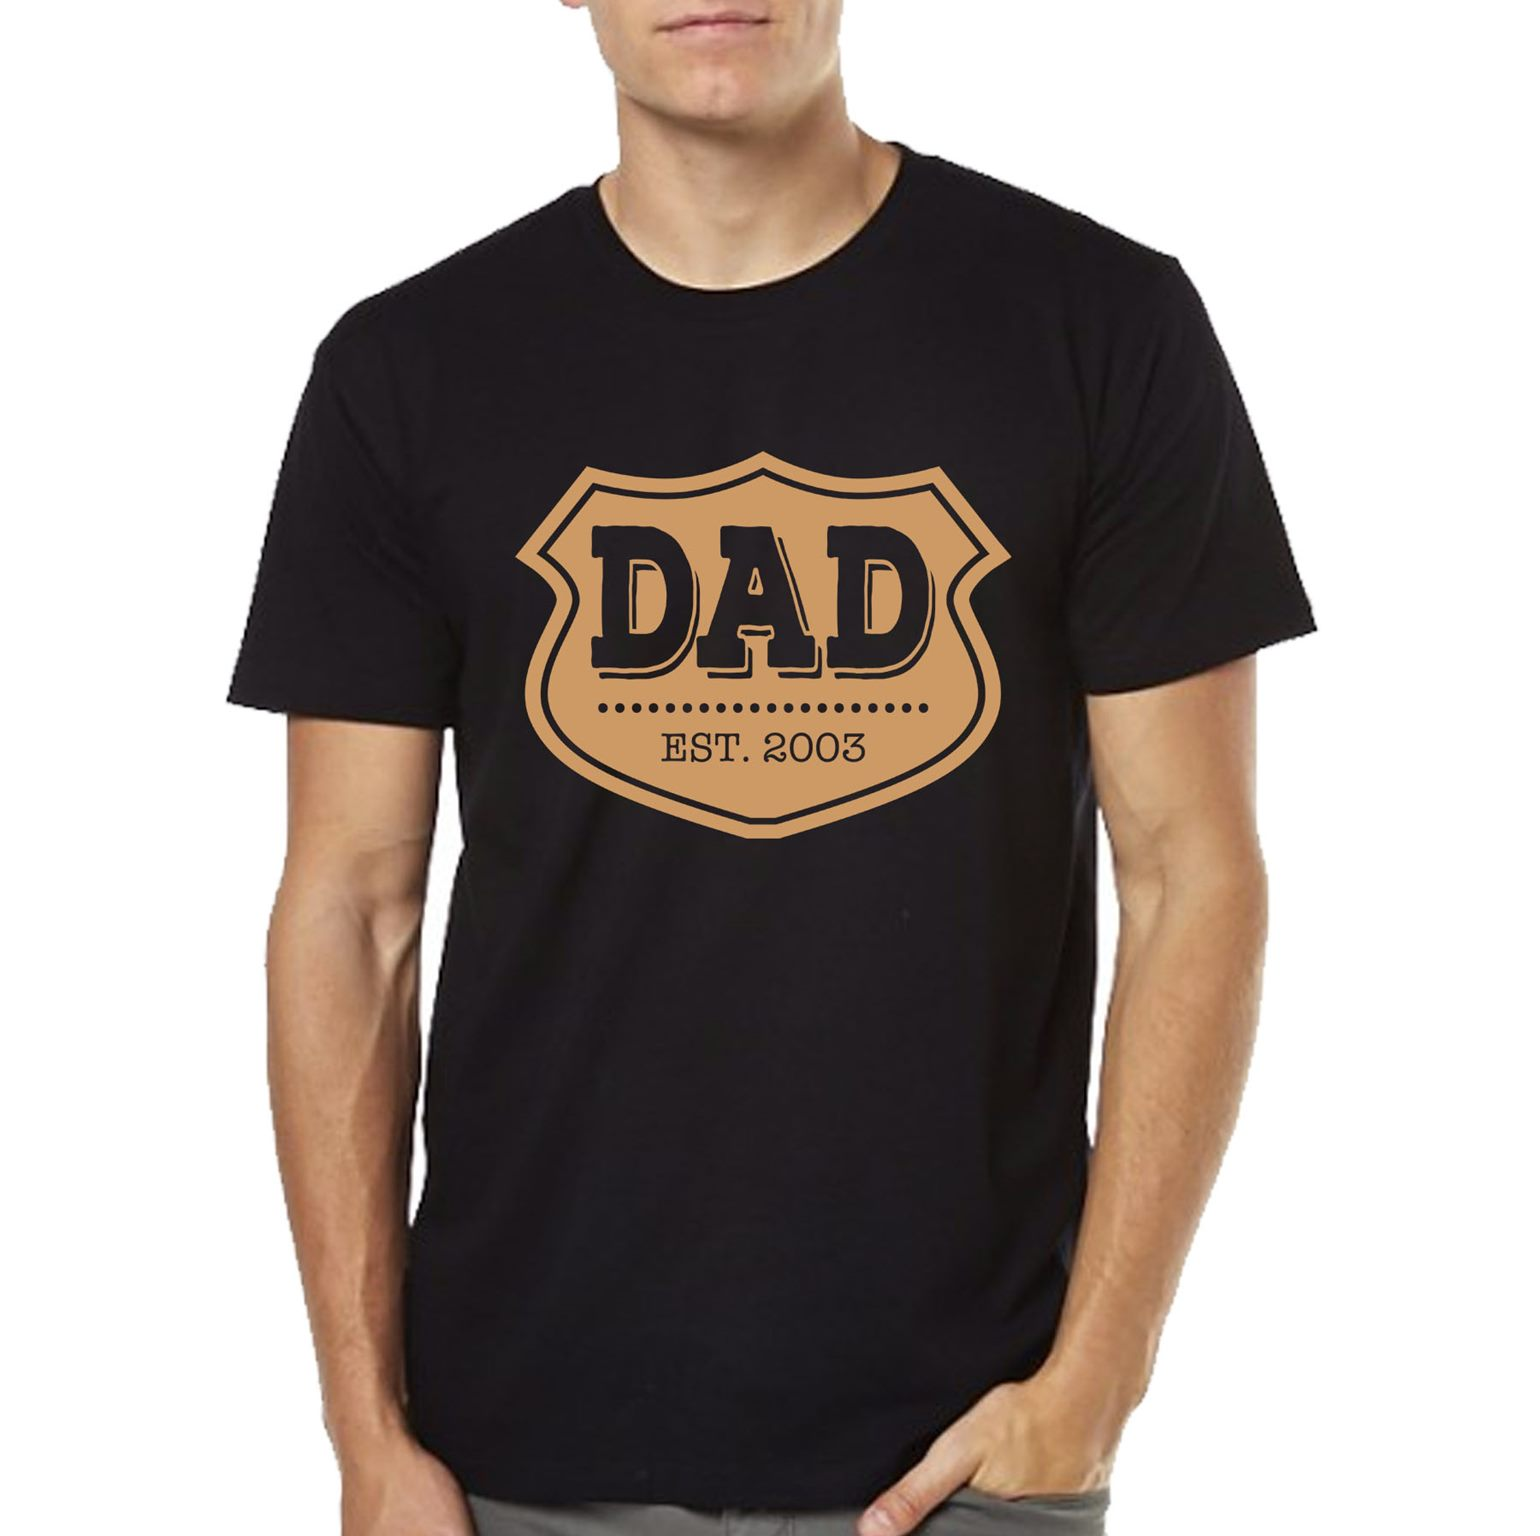 590a154065 Personalised Dad T Shirts « Alzheimer's Network of Oregon